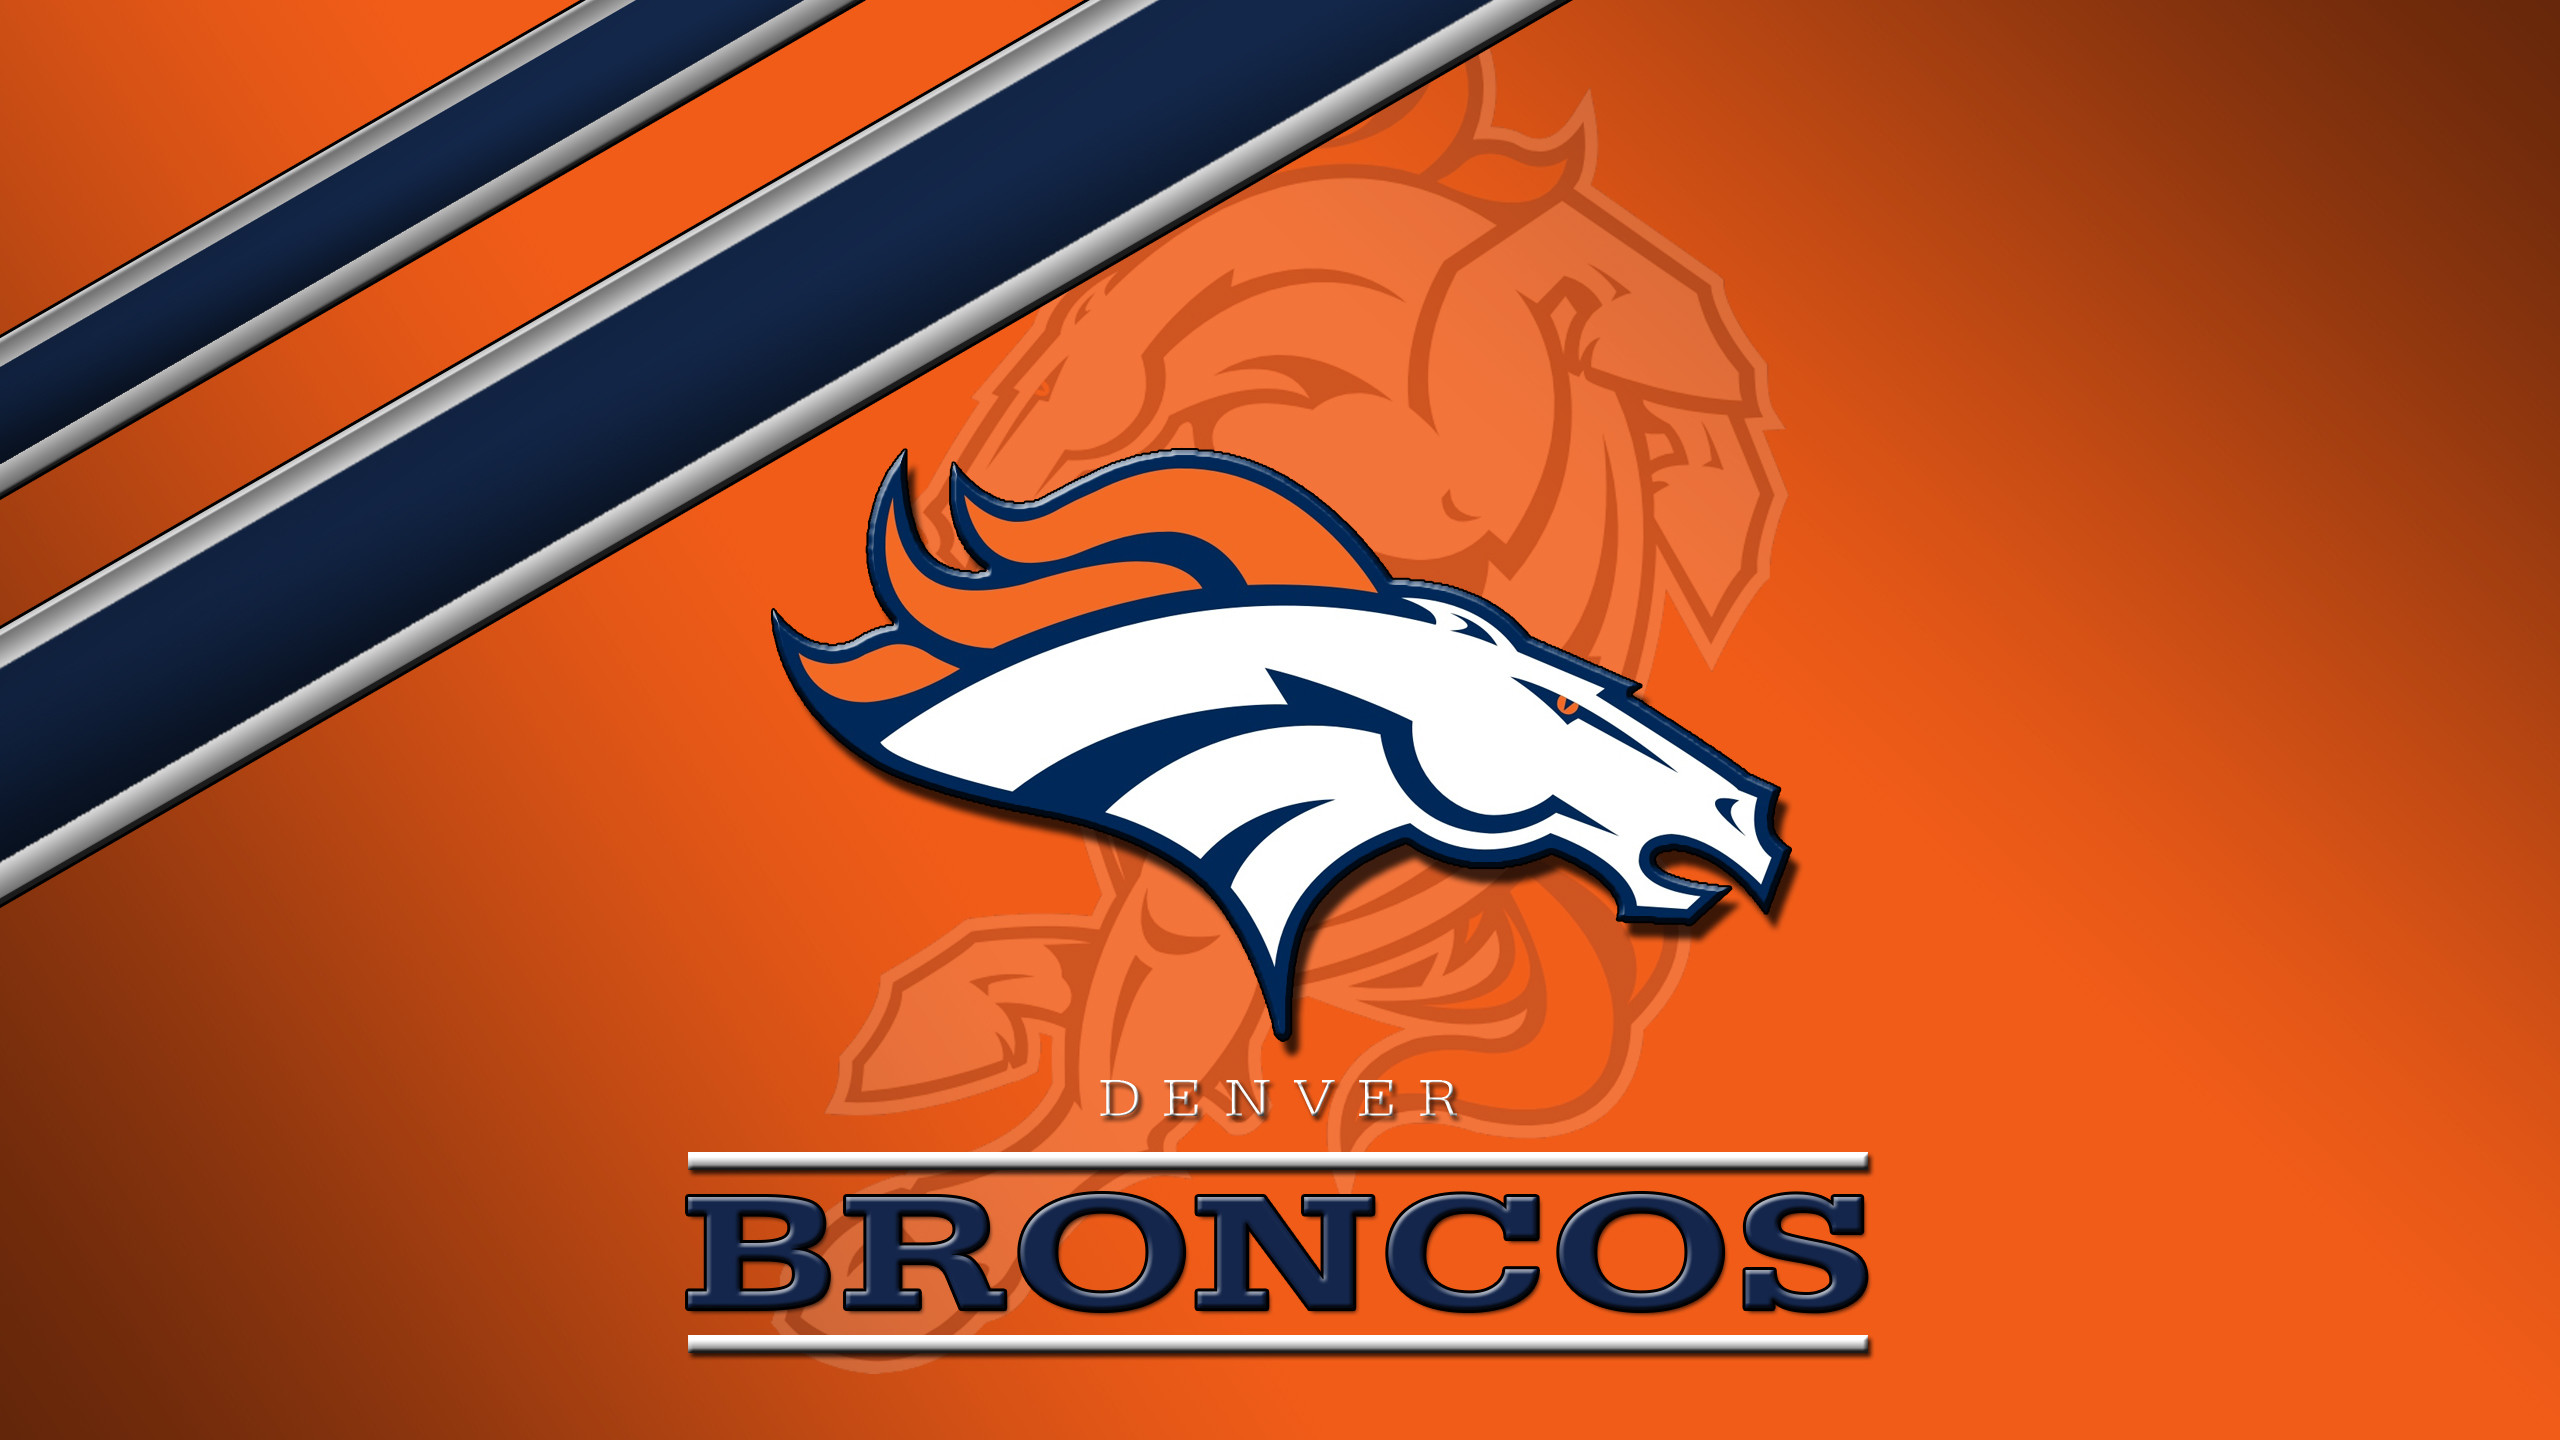 2560x1440 Denver Broncos Wallpapers HD